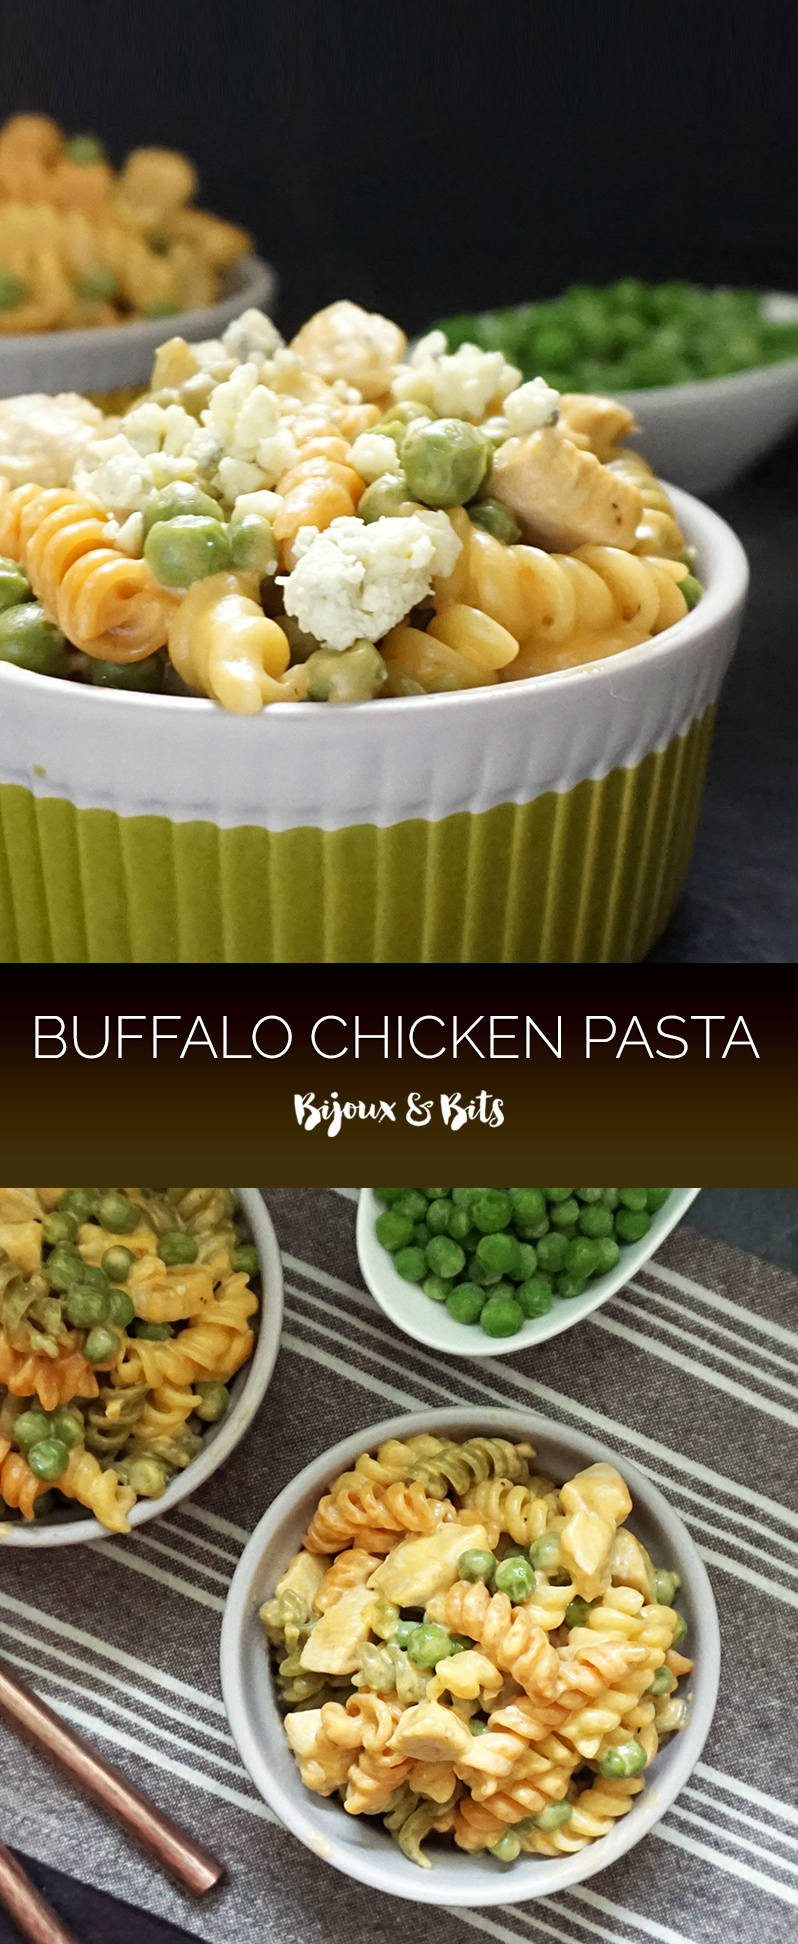 One pot Buffalo chicken pasta from @bijouxandbits #chicken #pasta #recipes